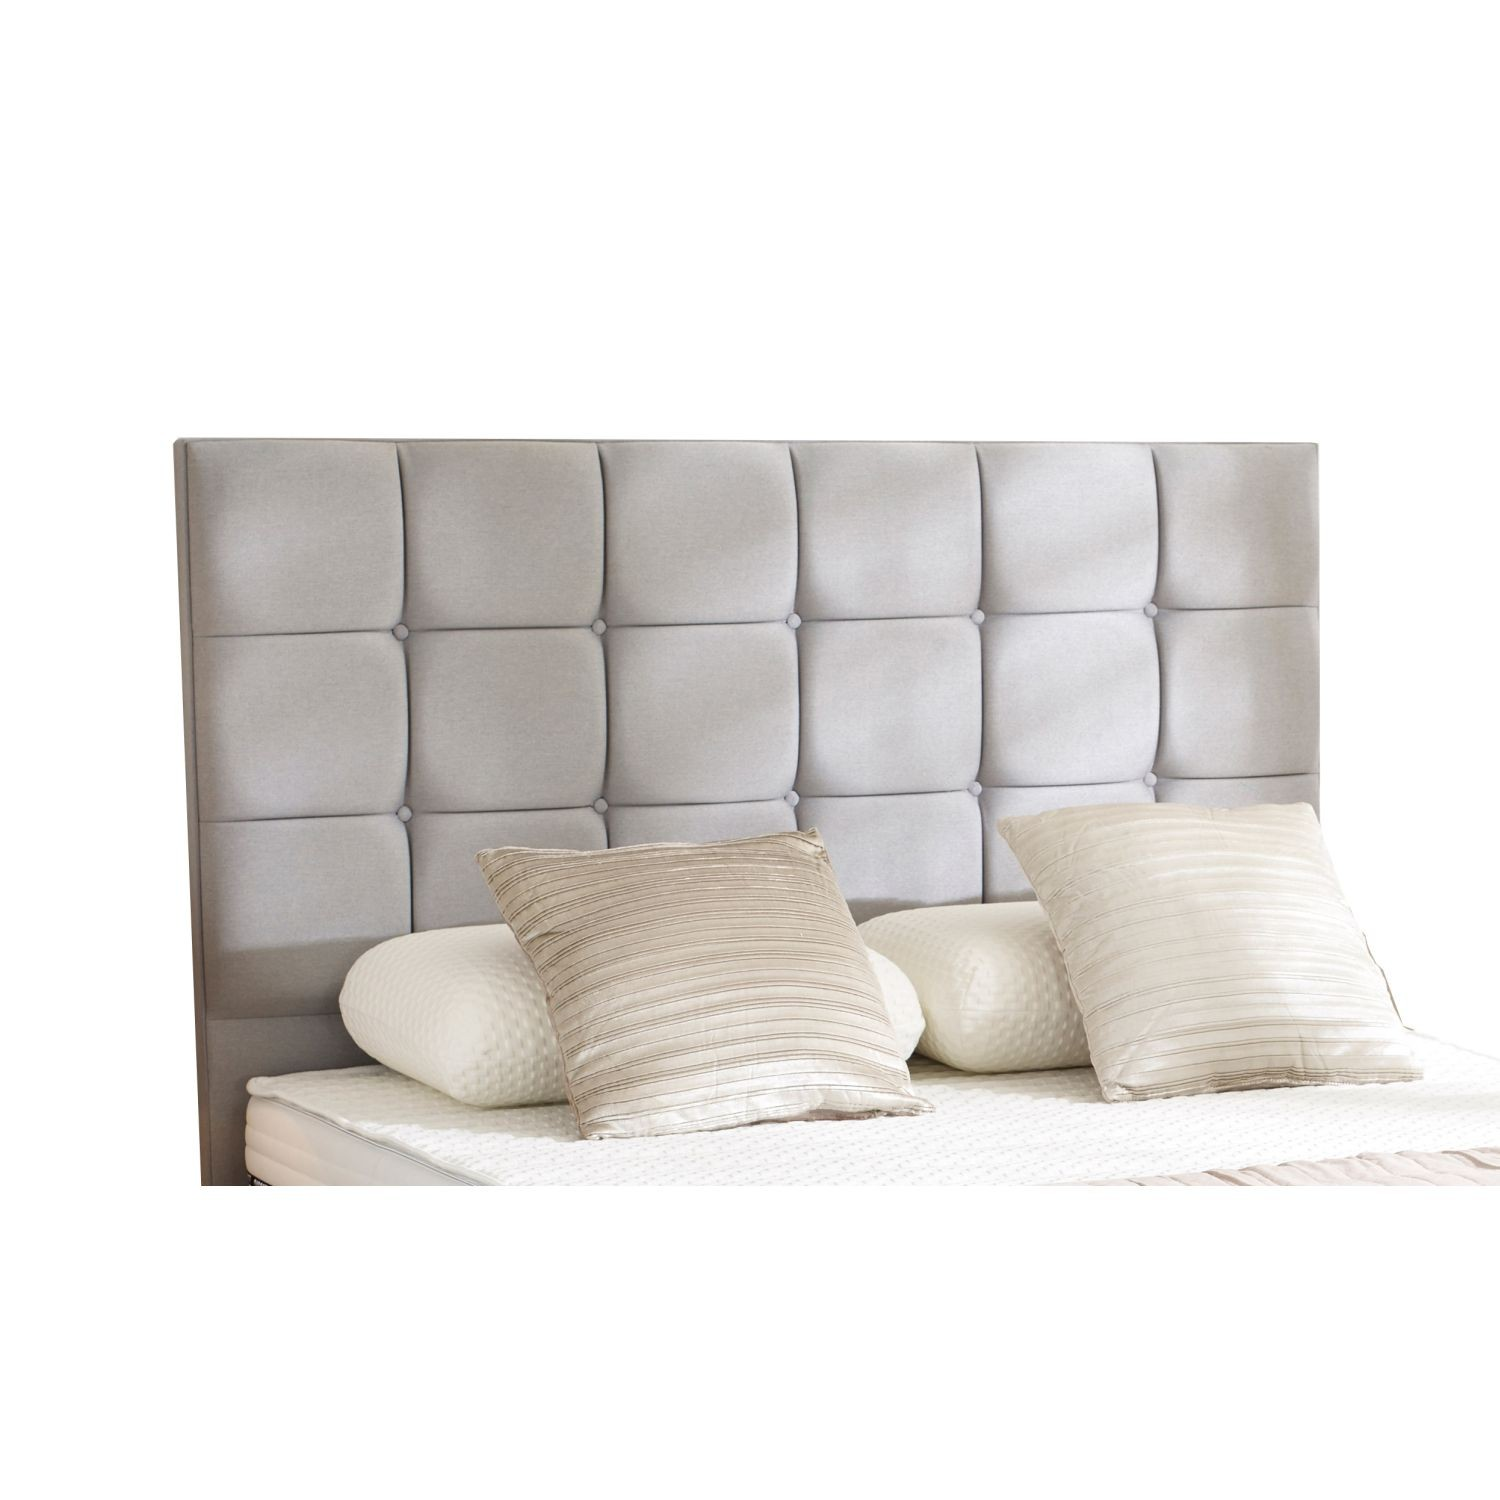 mammoth cube headboard small double. Black Bedroom Furniture Sets. Home Design Ideas